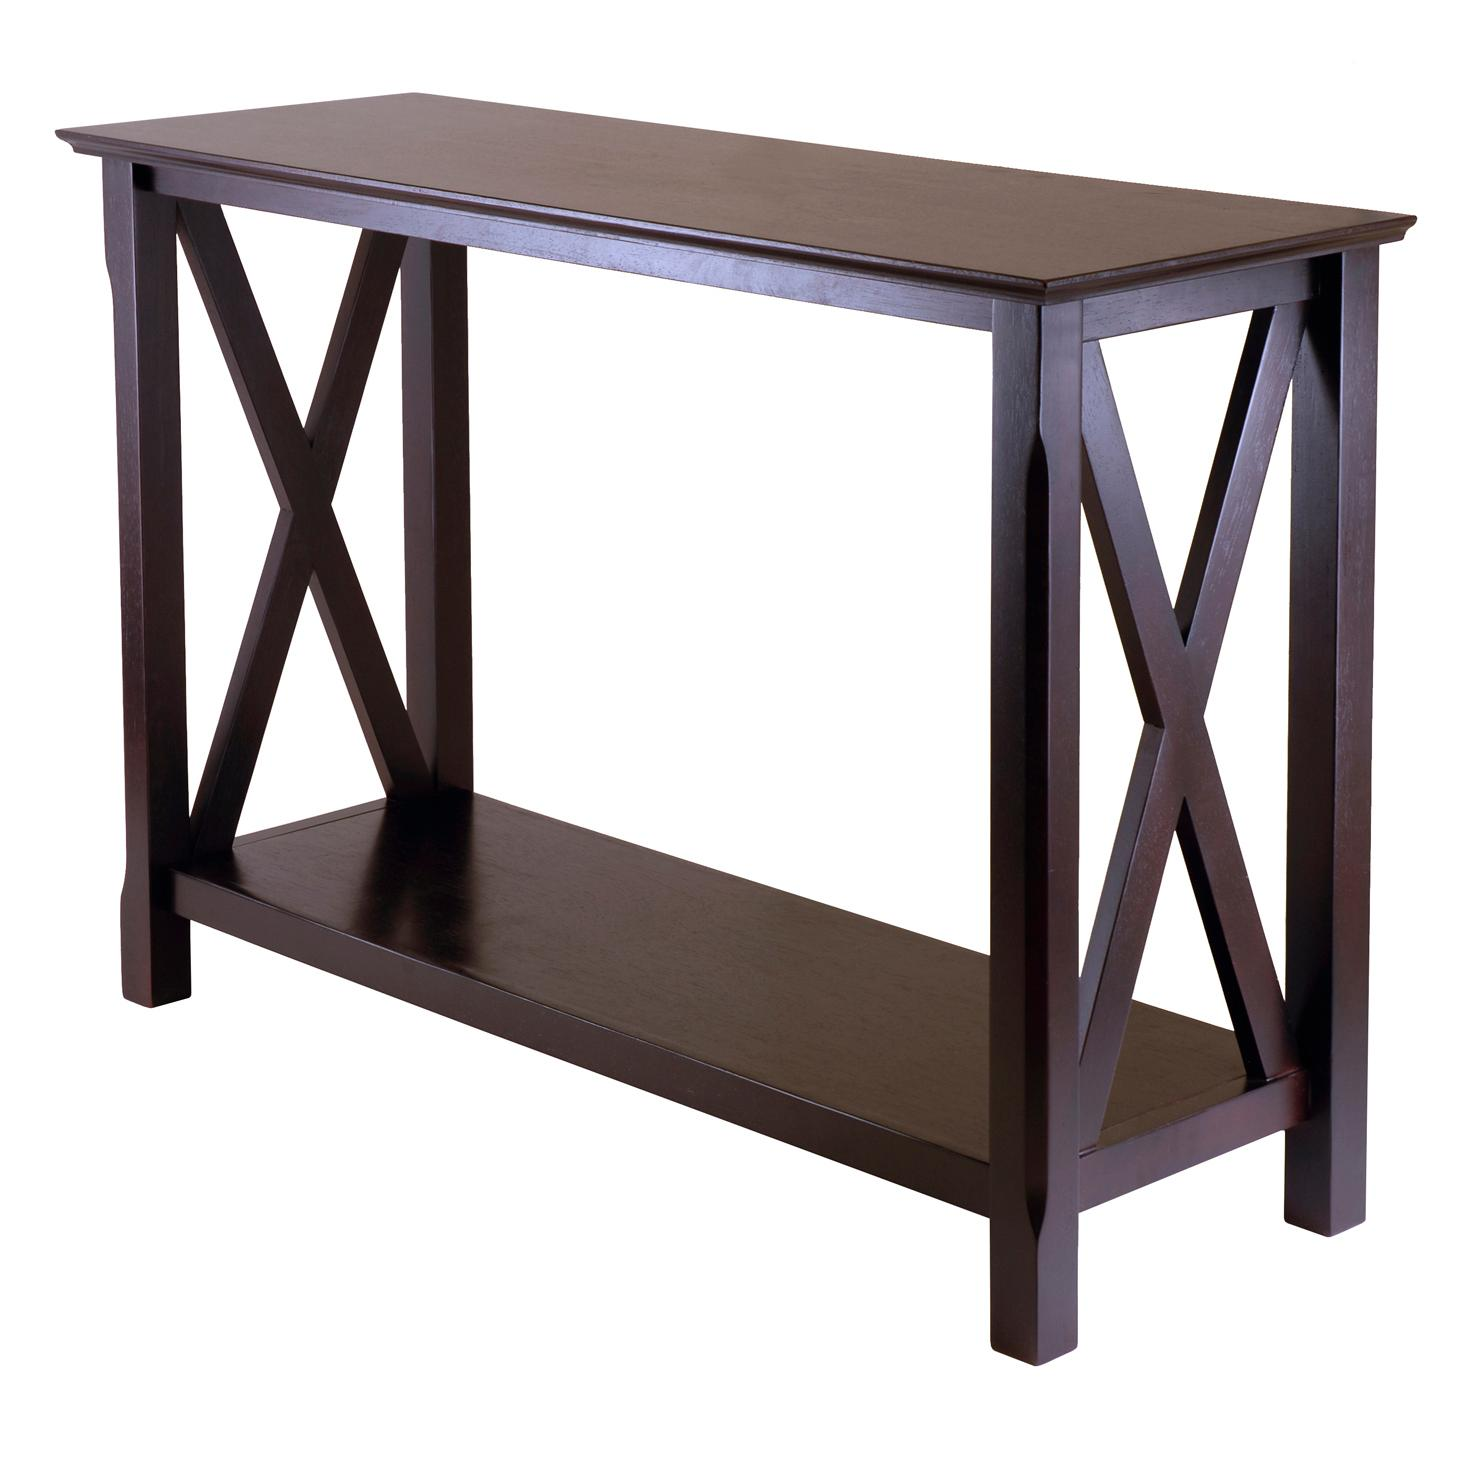 Winsome Wood Xola Console Table. Amazon com  Winsome Wood Xola Console Table  Kitchen   Dining